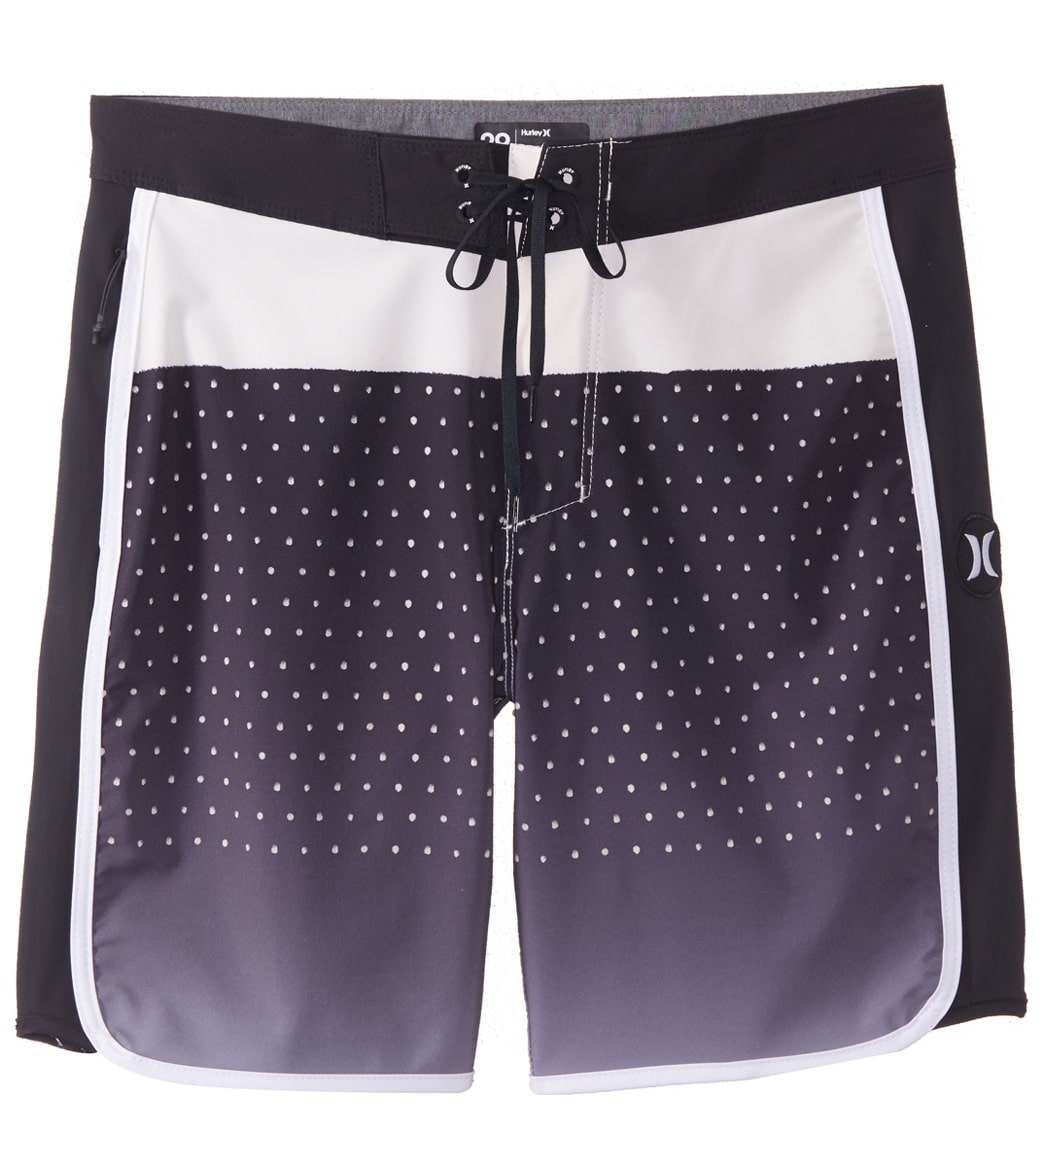 bee9a6d675 Hurley Men's Phantom Motion Third Reef Boardshort at SwimOutlet.com - Free  Shipping